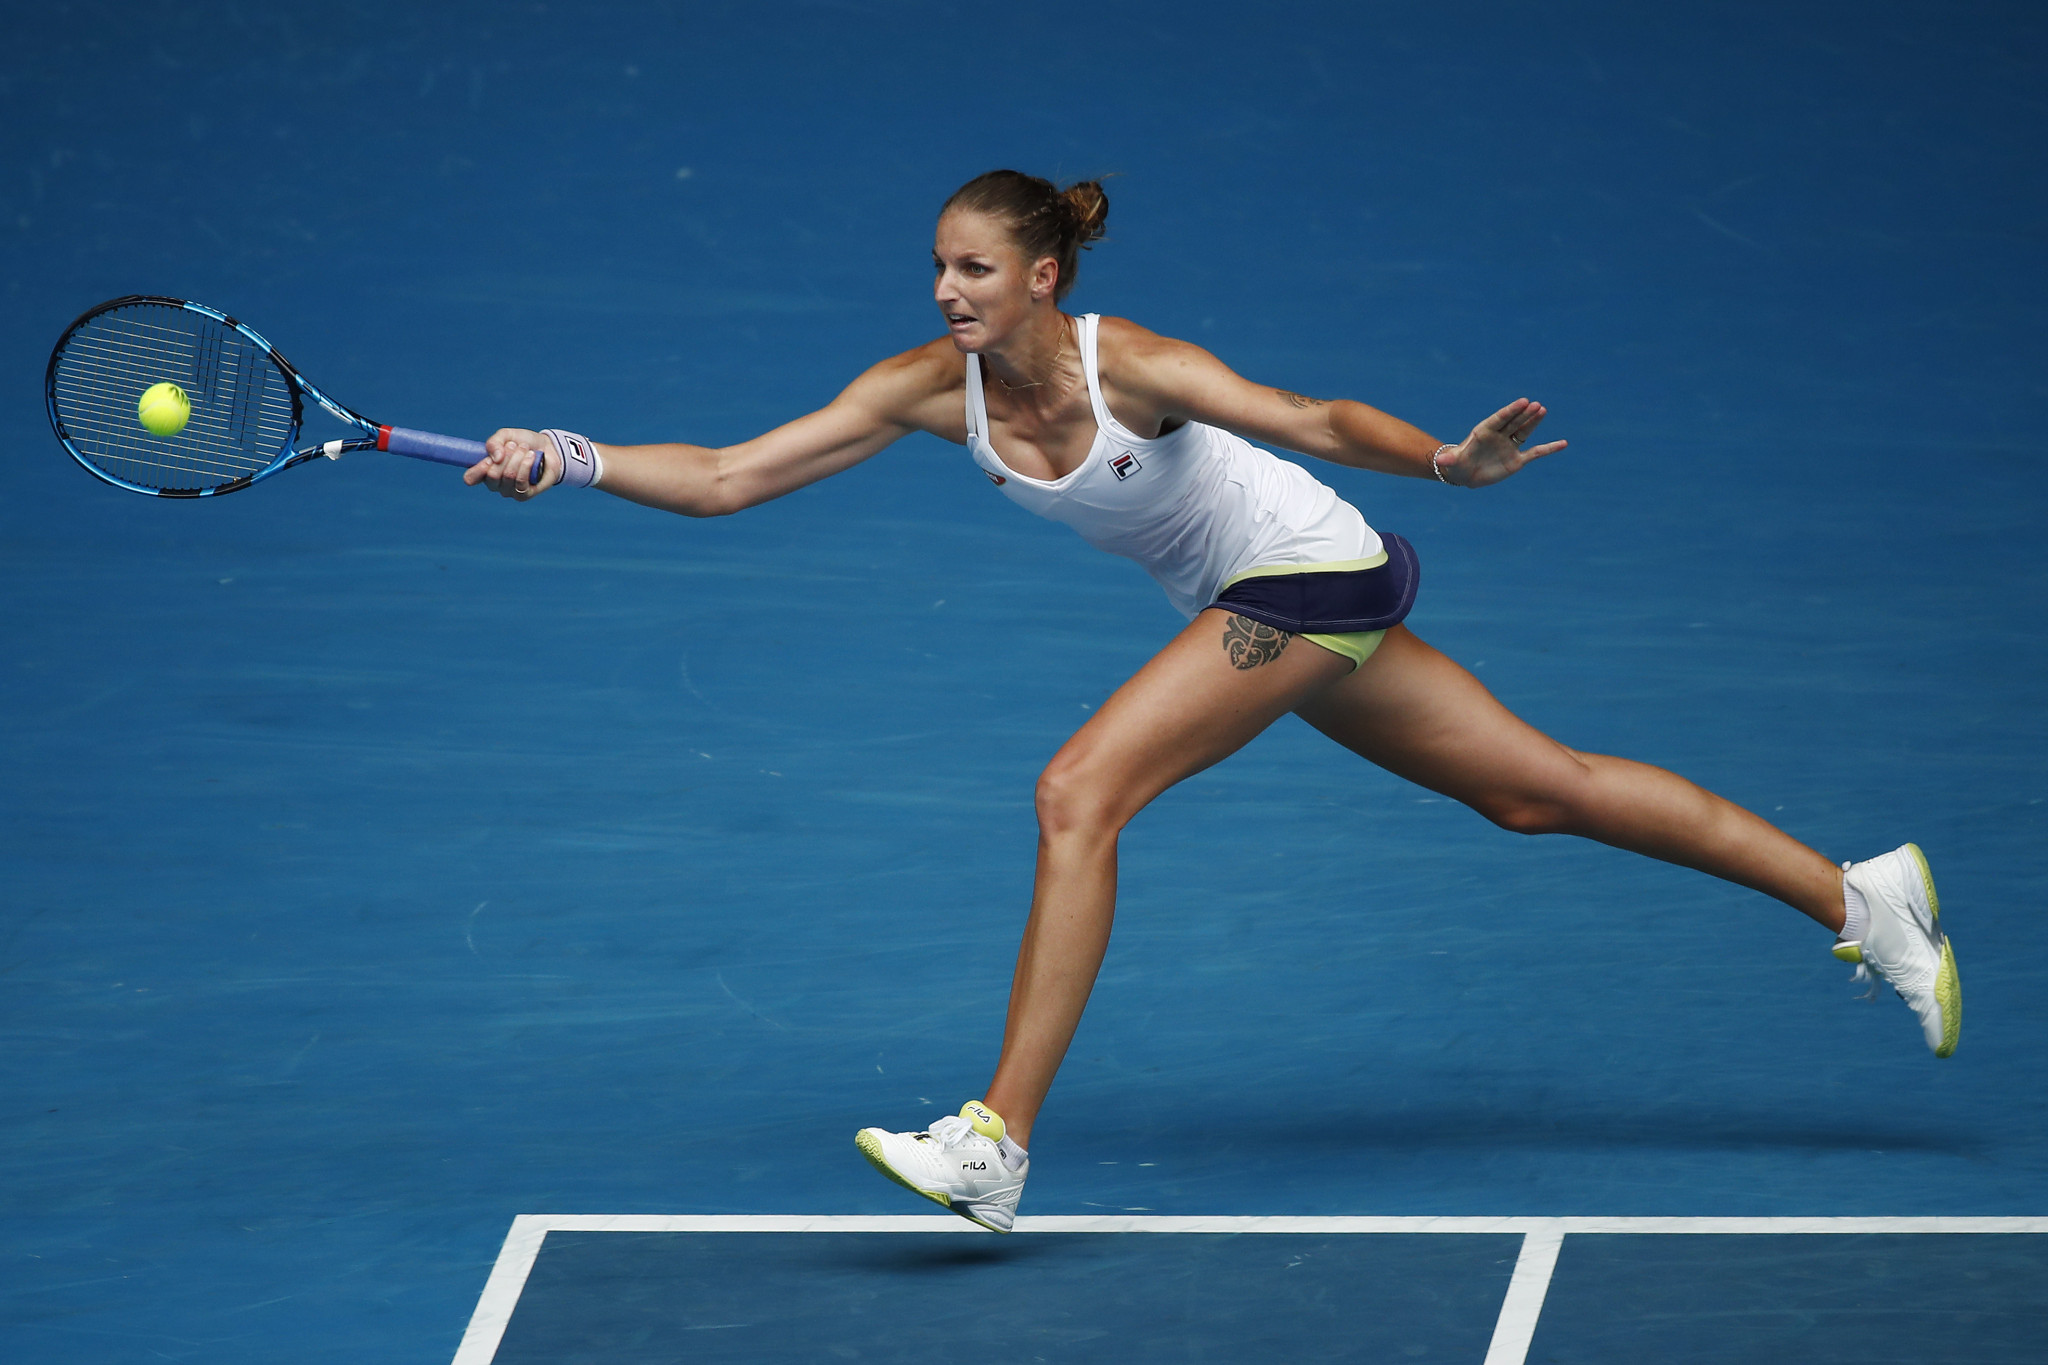 Plíšková suffers third-round exit as Barty and Nadal advance at Australian Open